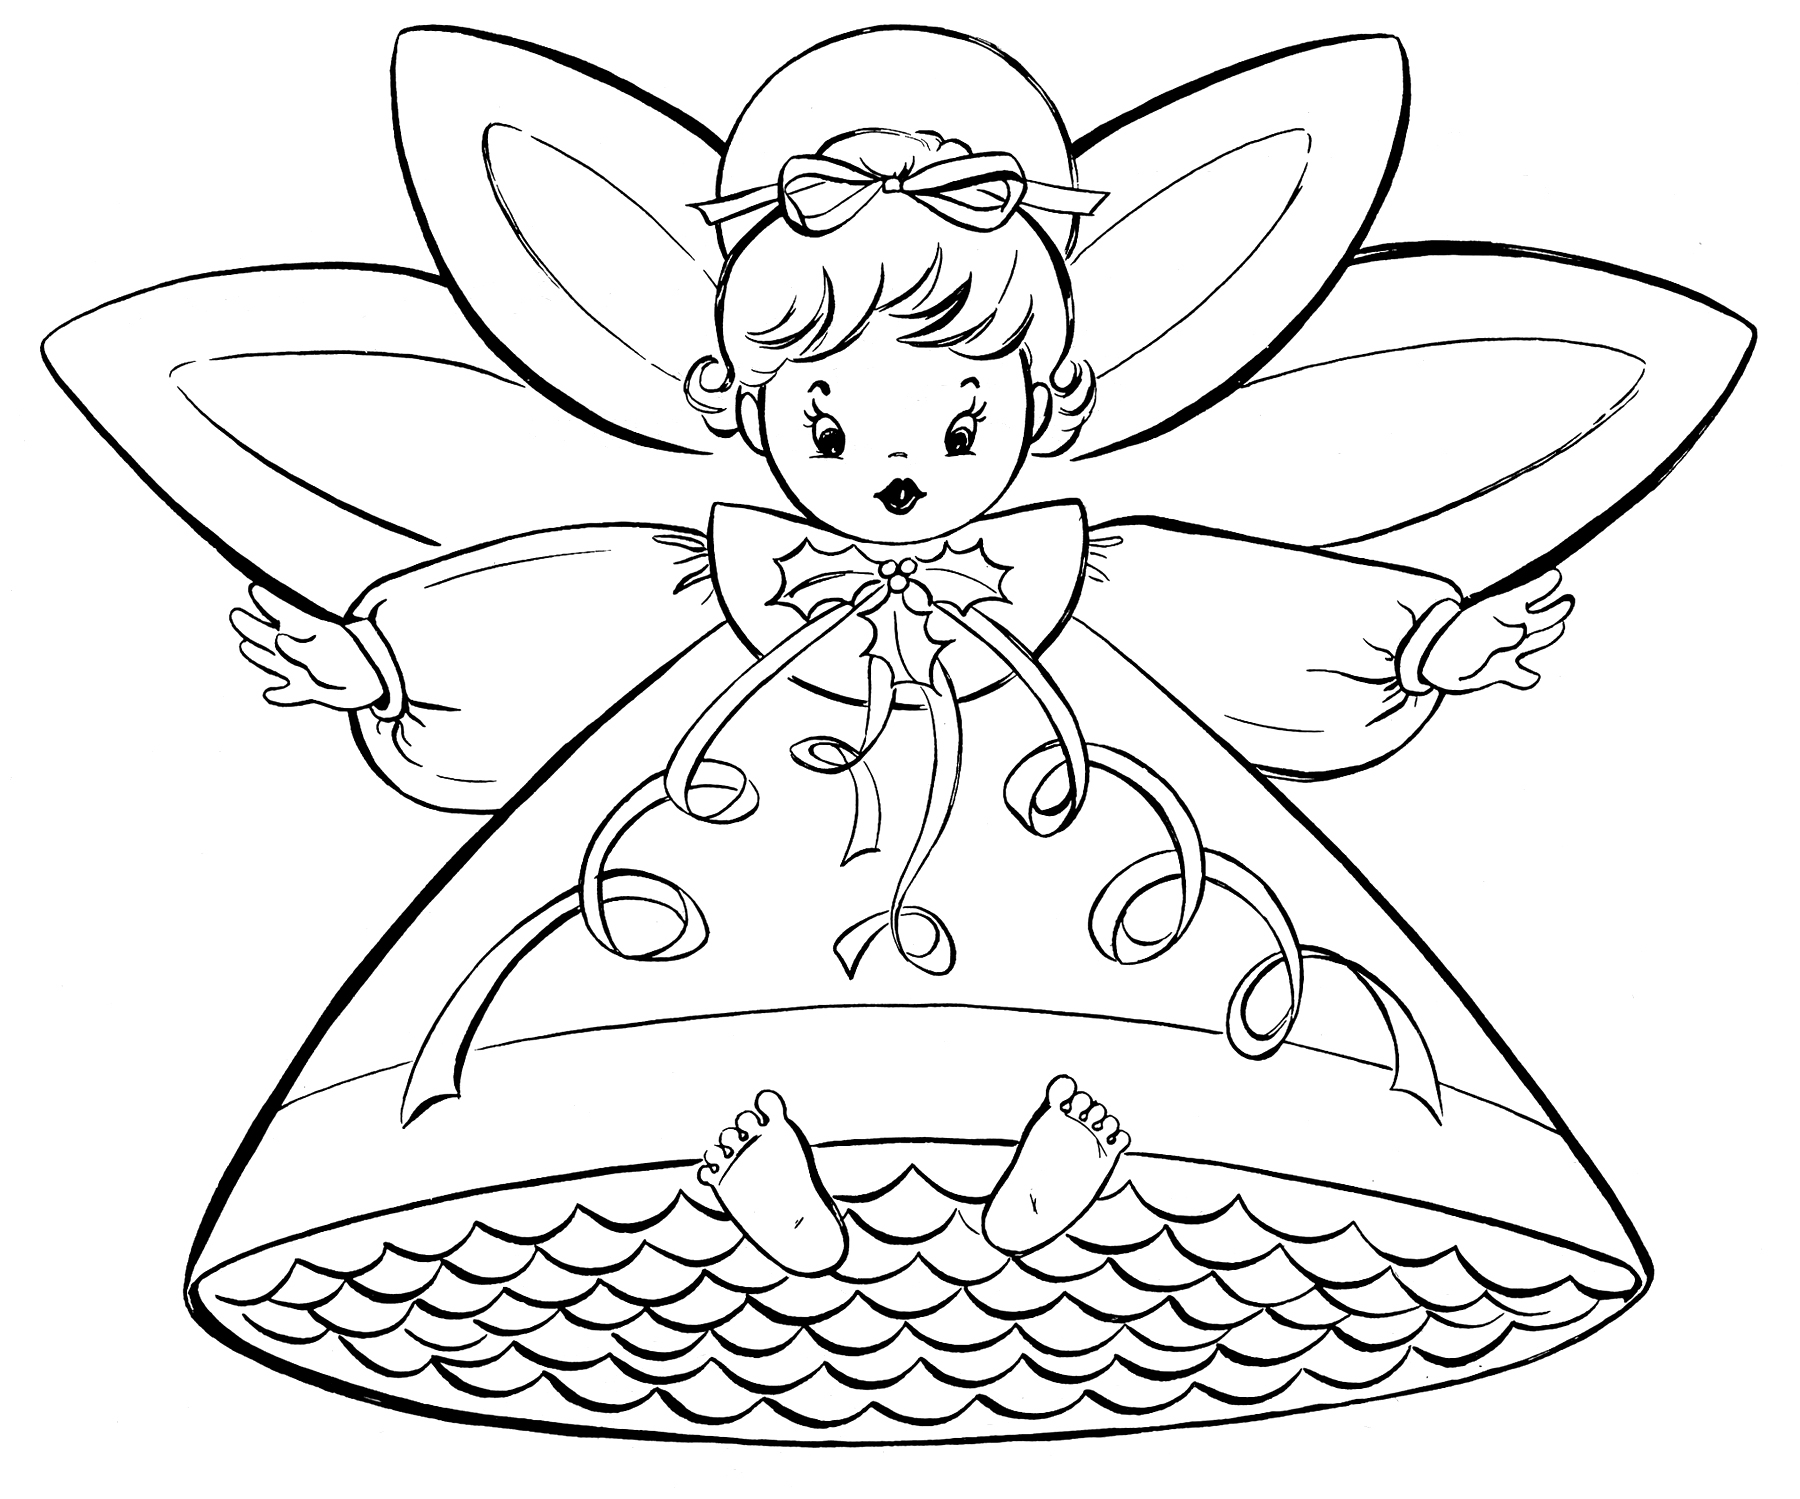 Unique Christmas Coloring Pages With Free Retro Angels The Graphics Fairy